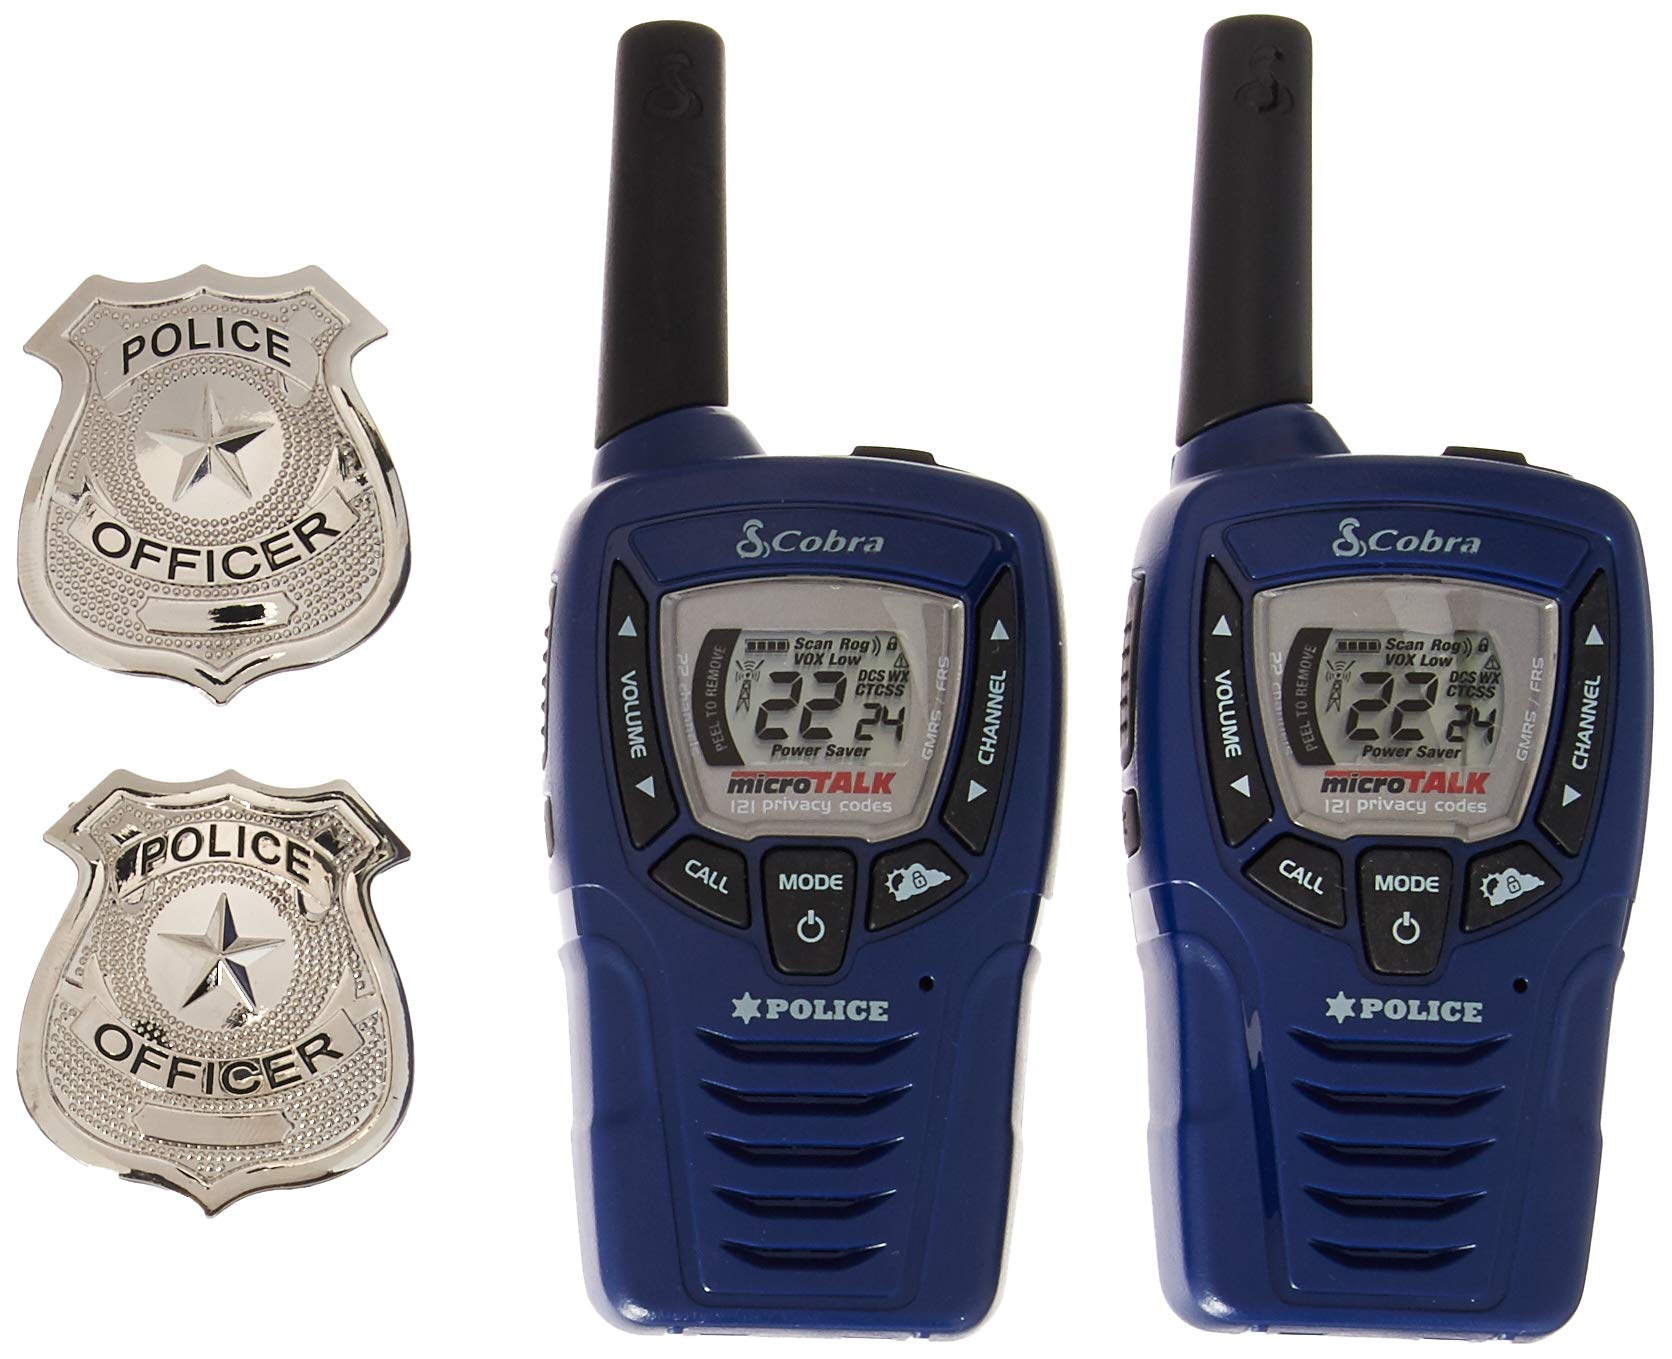 Cobra CX396A Kids' Walkie Talkies Two-Way Radios Toy for Kids, Police Version with 2 Badges (Pair) by Cobra (Image #1)